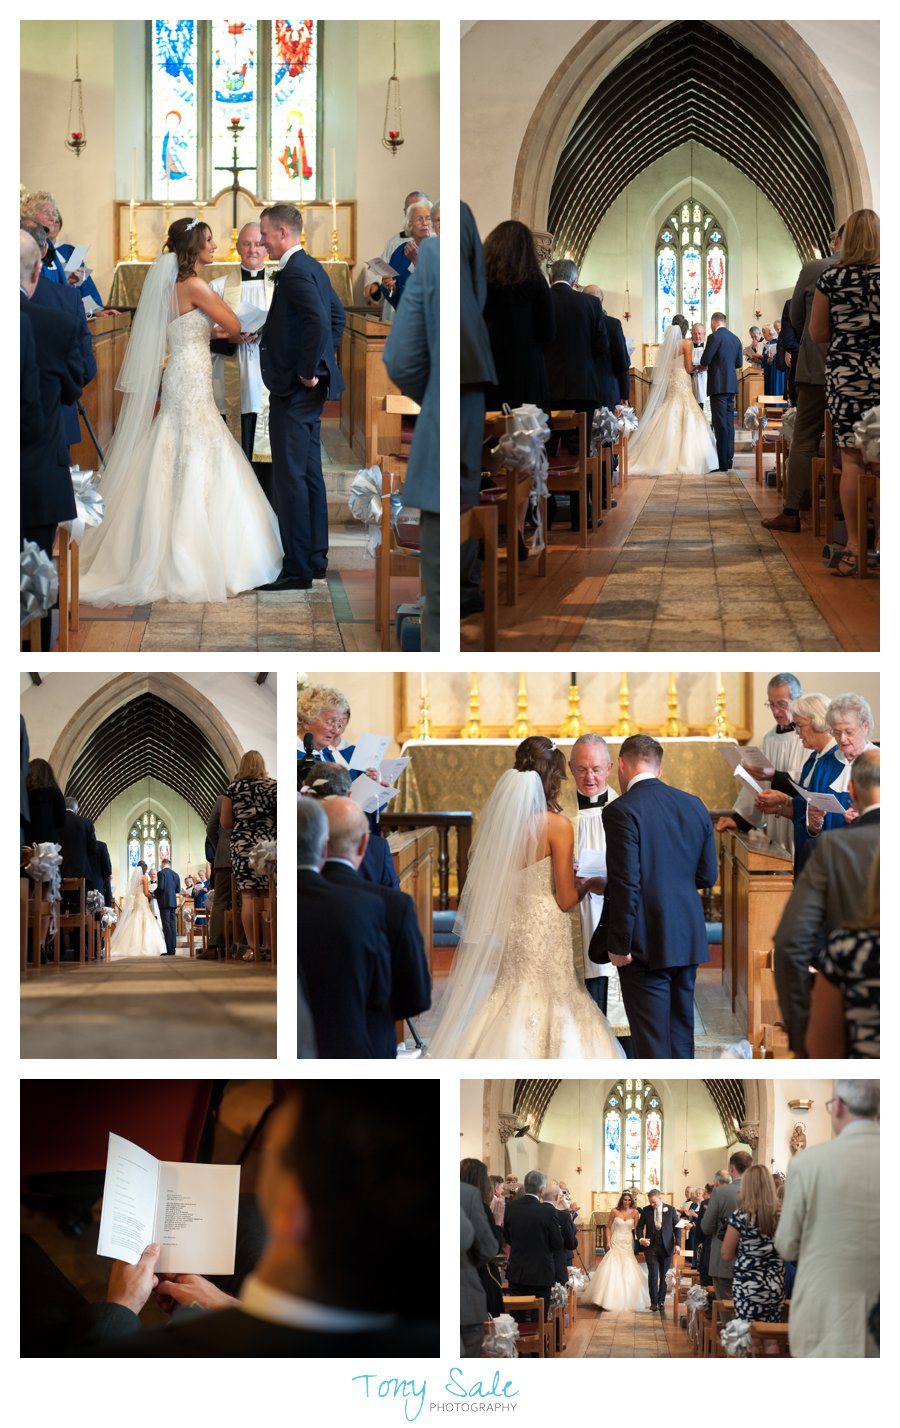 Bride and groom blessed by the vicar at All Saints